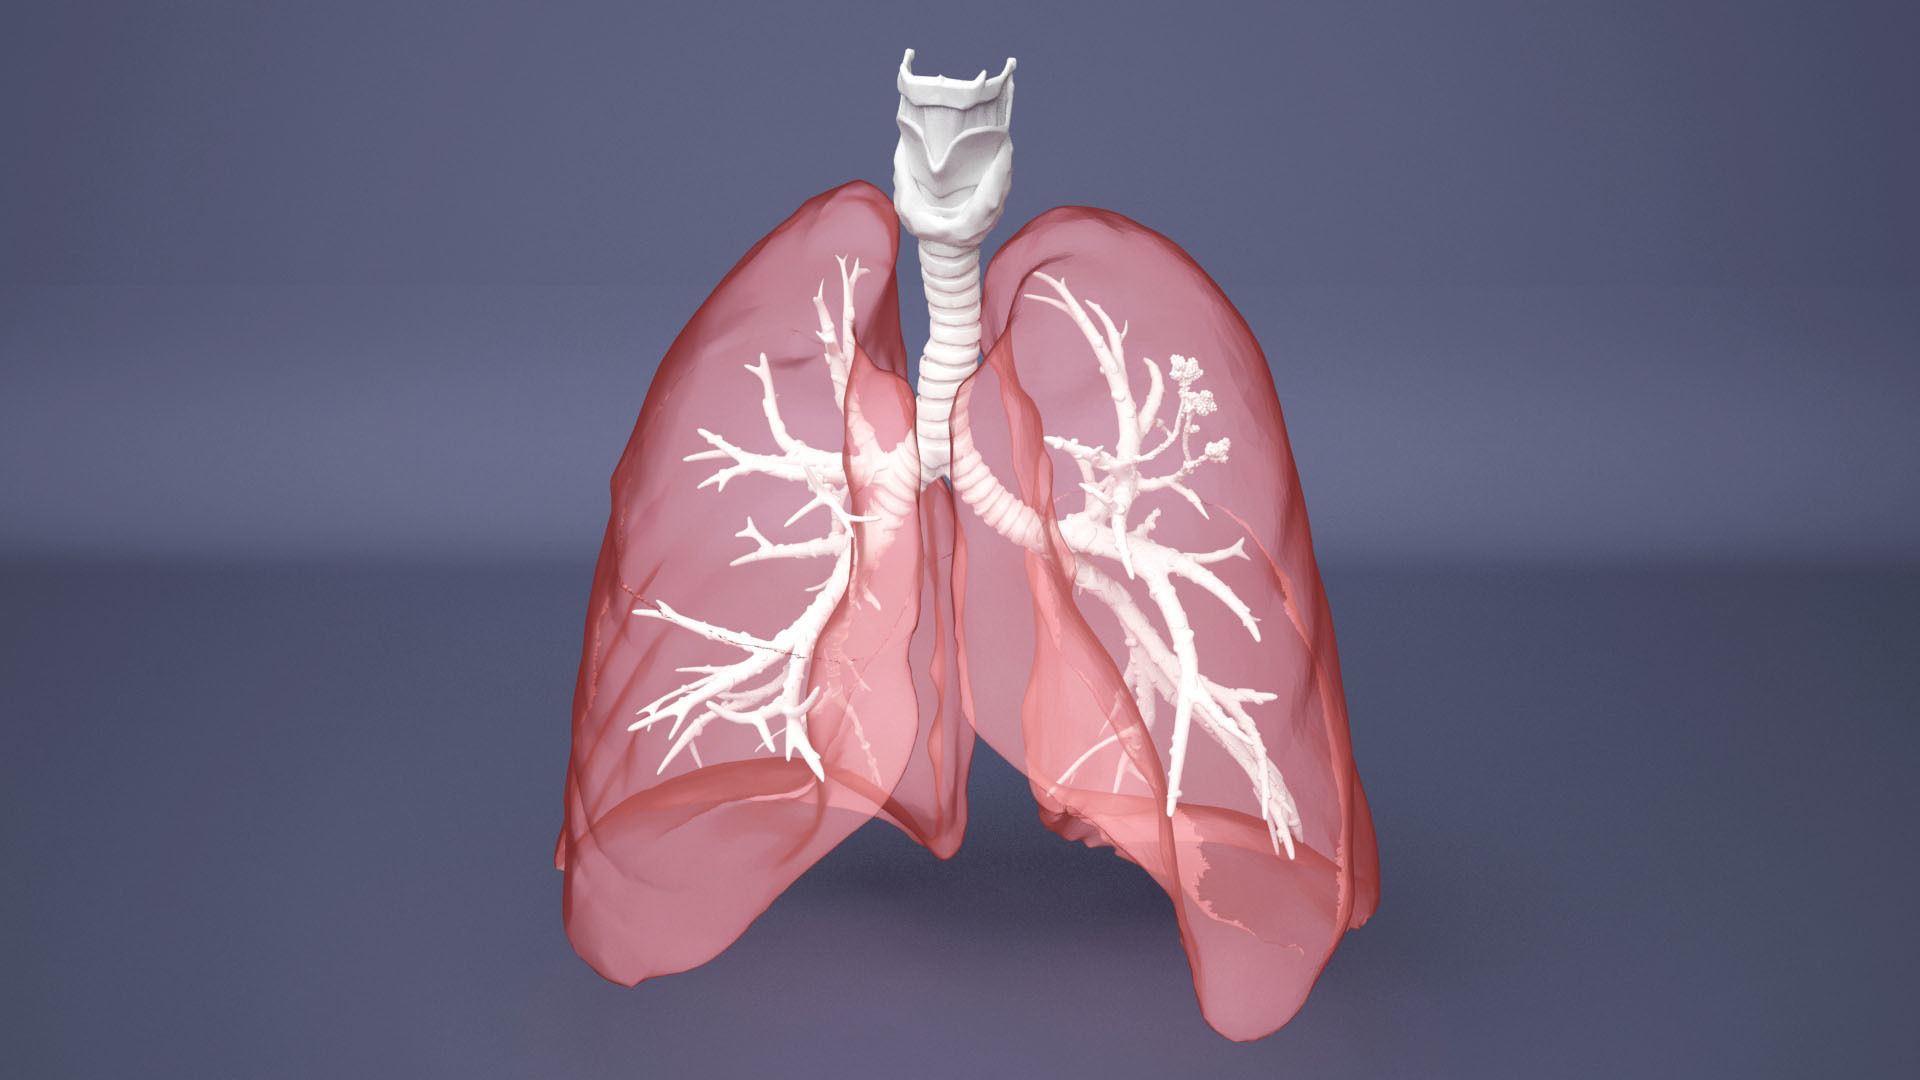 Human Lung with Bronchia - Anatomy Respiratory System